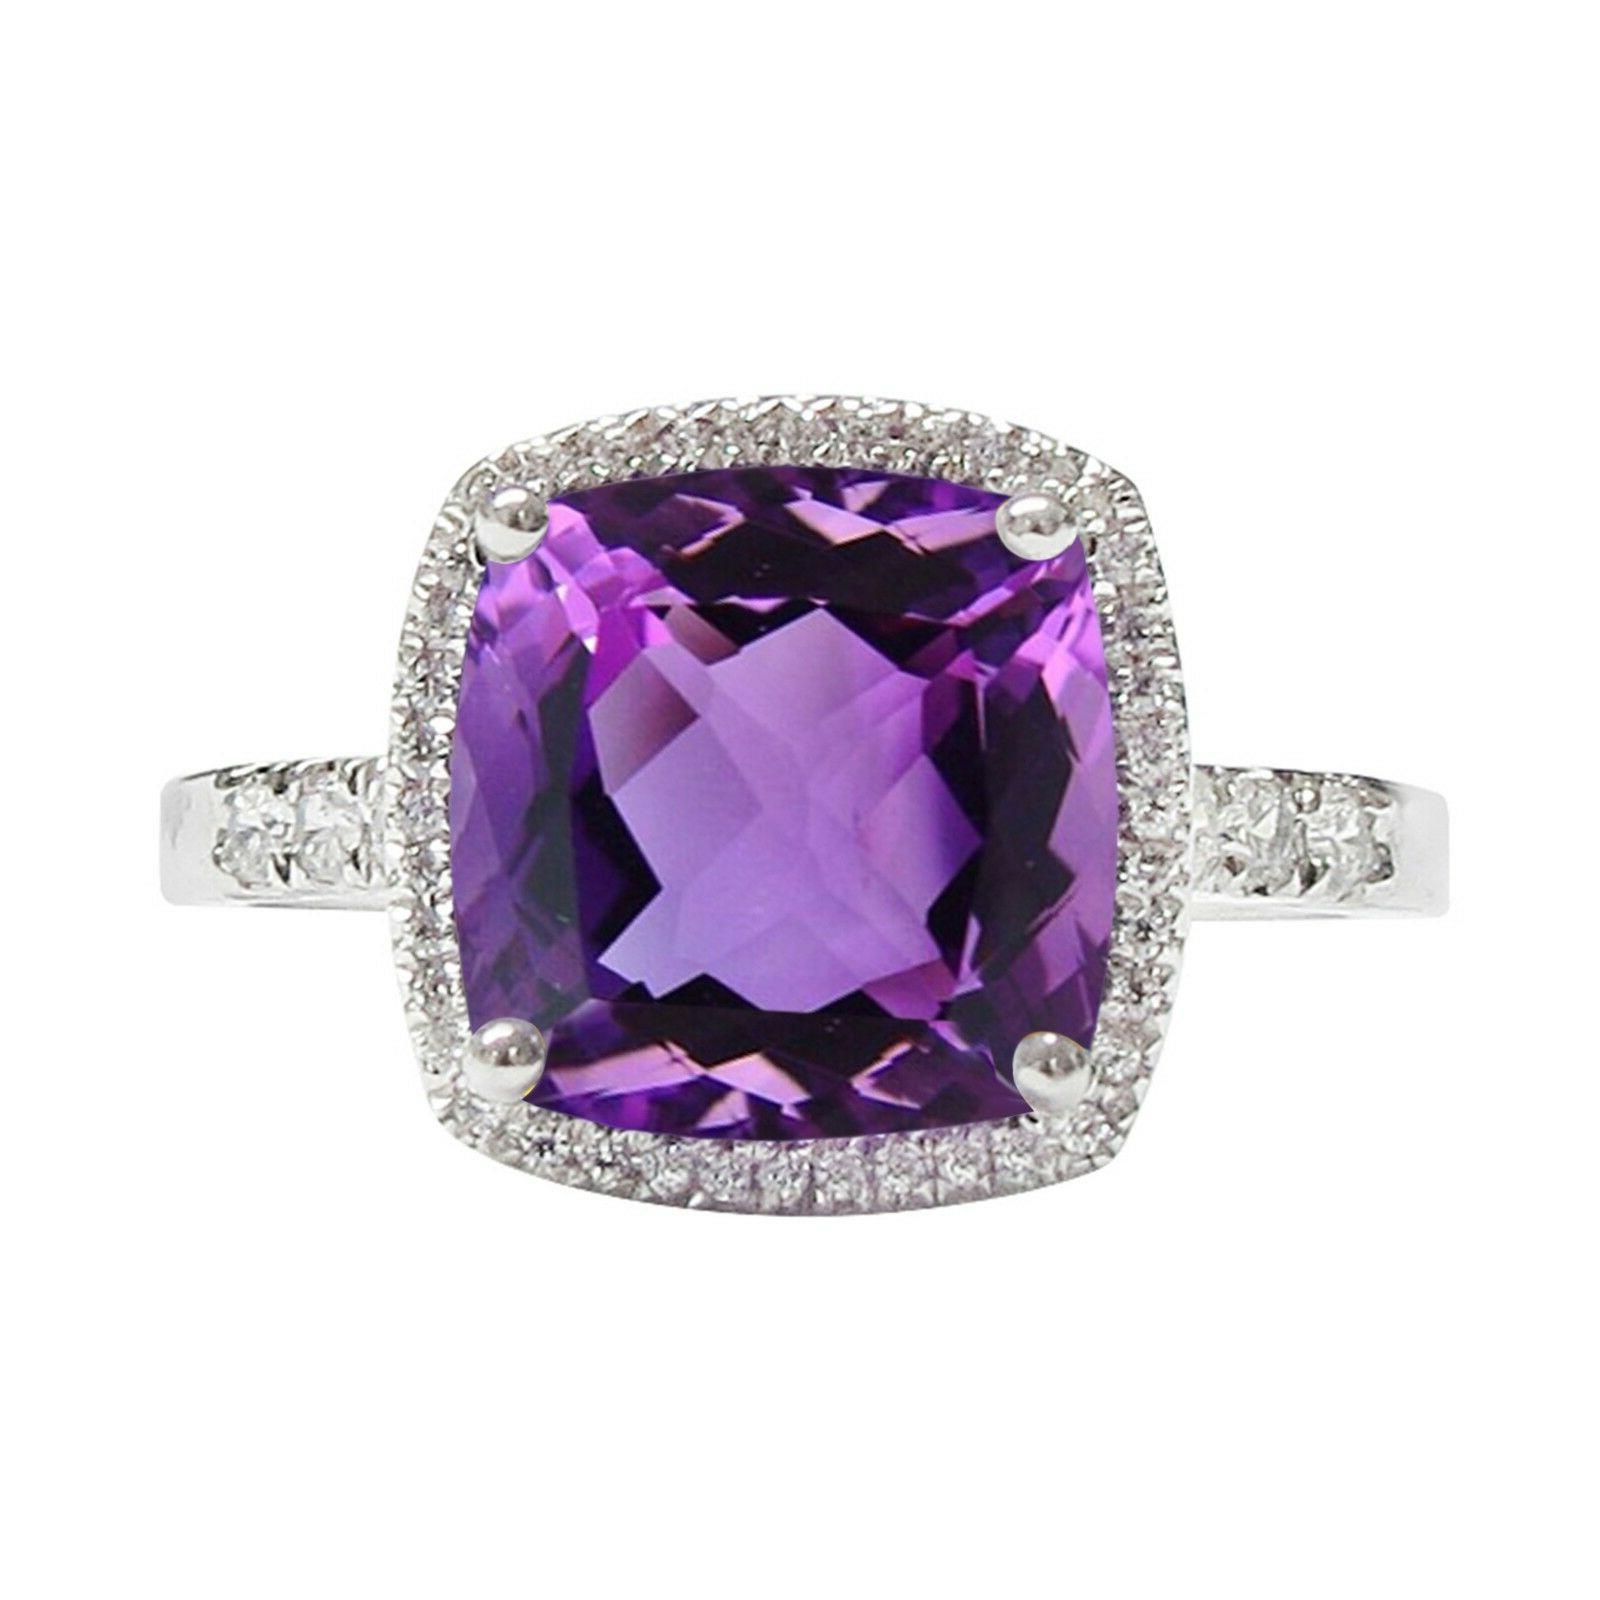 3cttw amethyst and white sapphire diamond cocktail